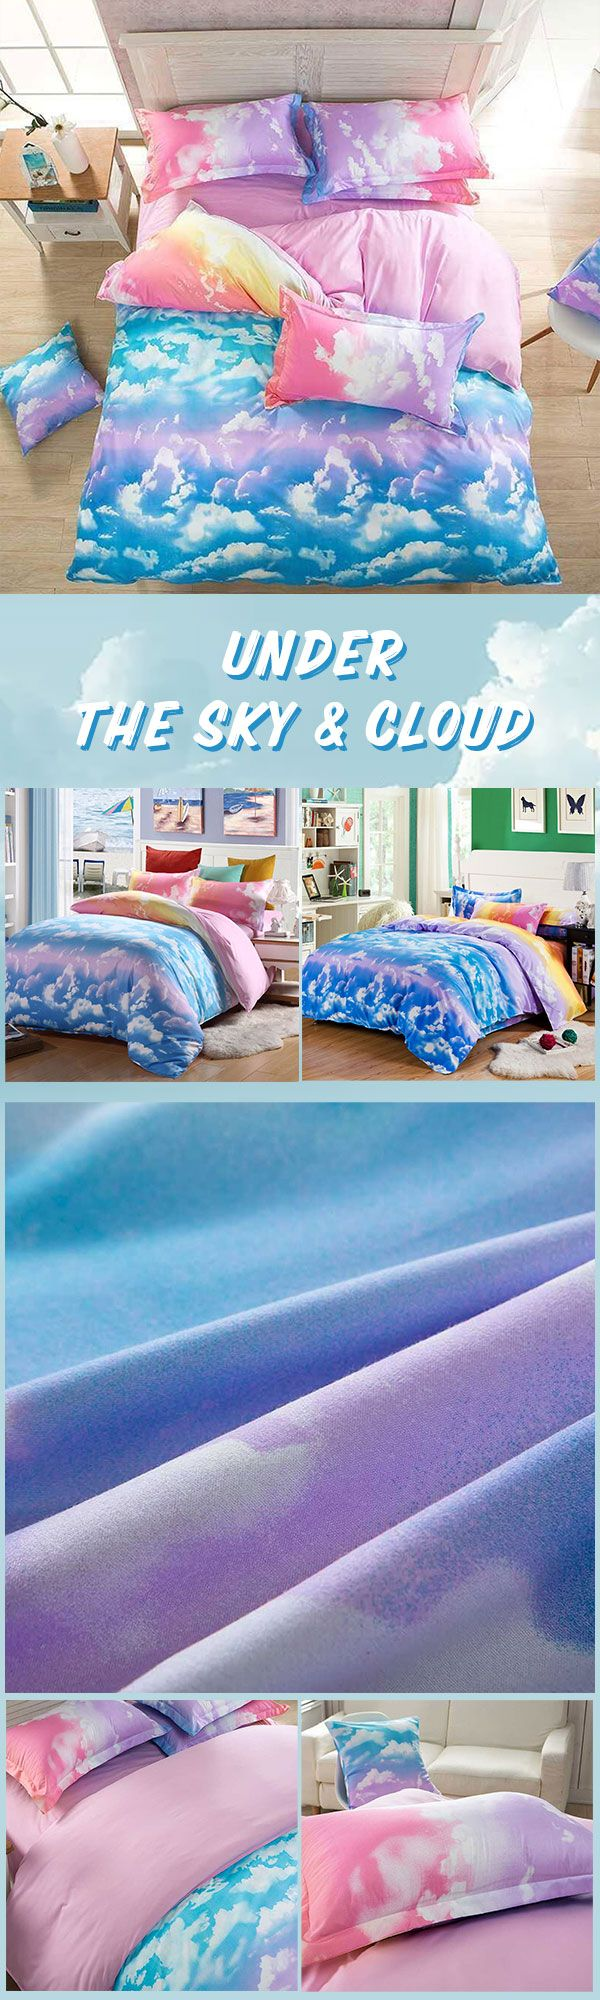 have a sweet dream under the sky  Save $26.77 Cloud Print Single Twin King Quilt Duvet Cover Bedding Sheet Pillowcases Set